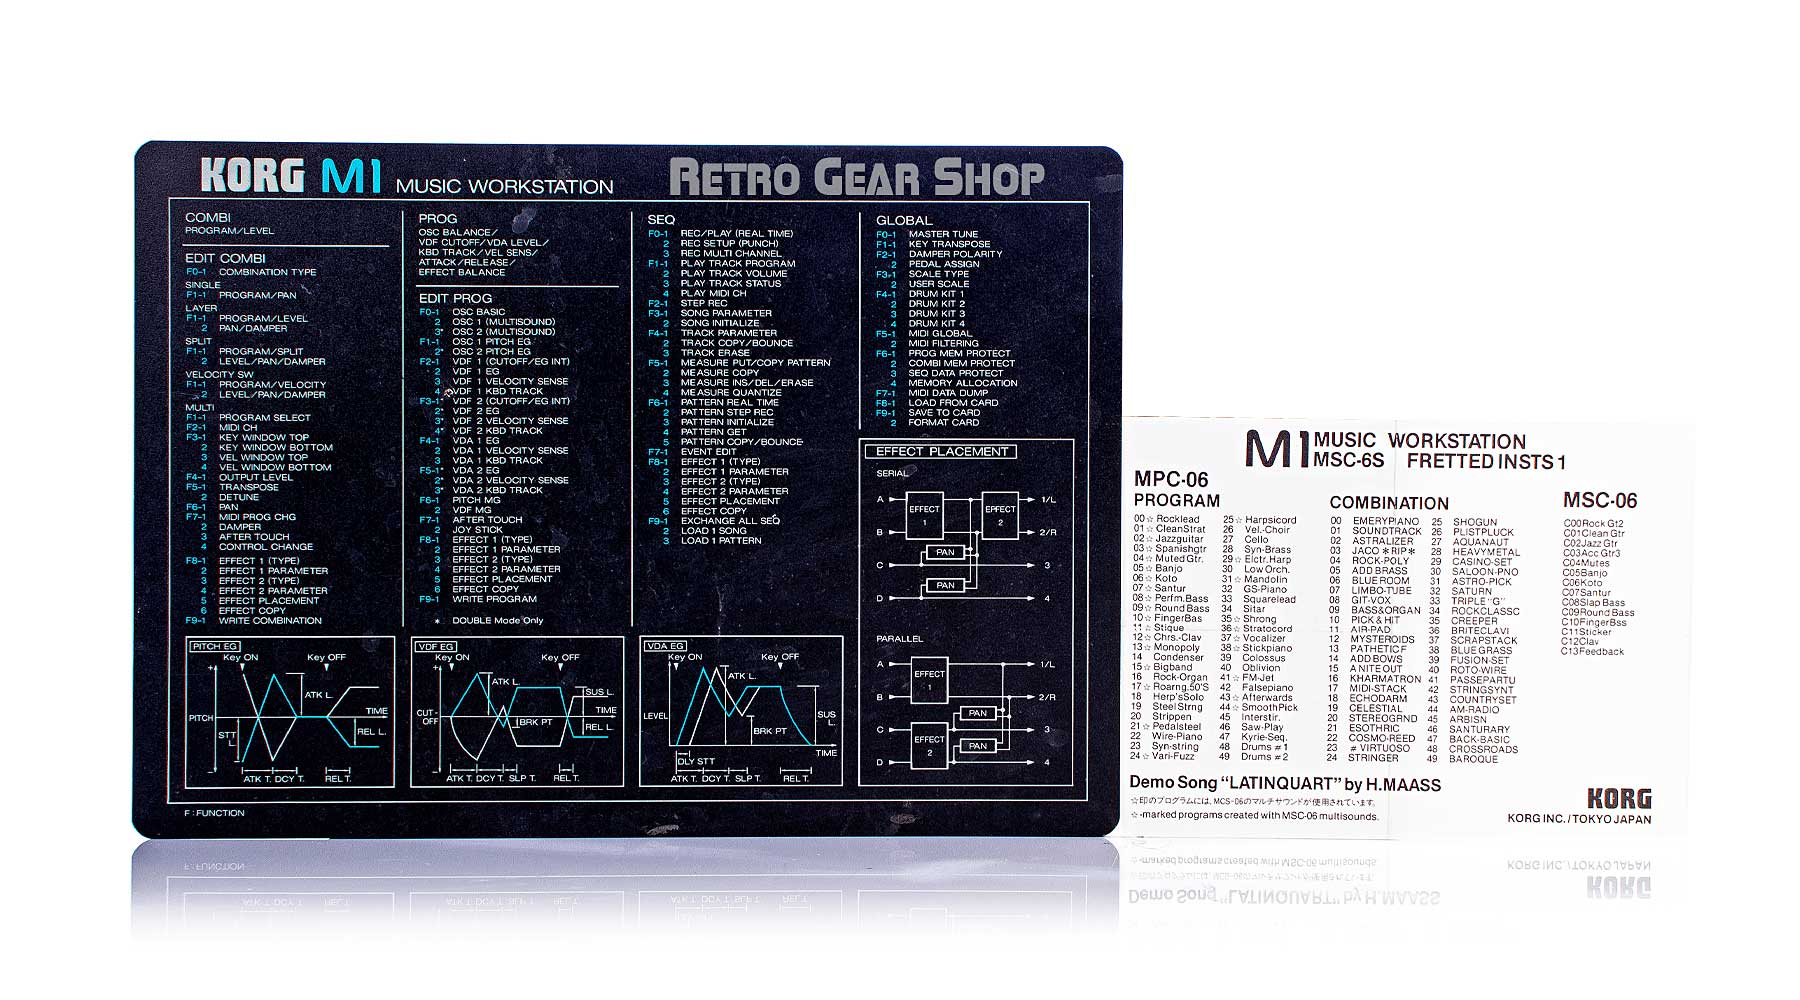 Korg M1 Music Workstation Manual Cards